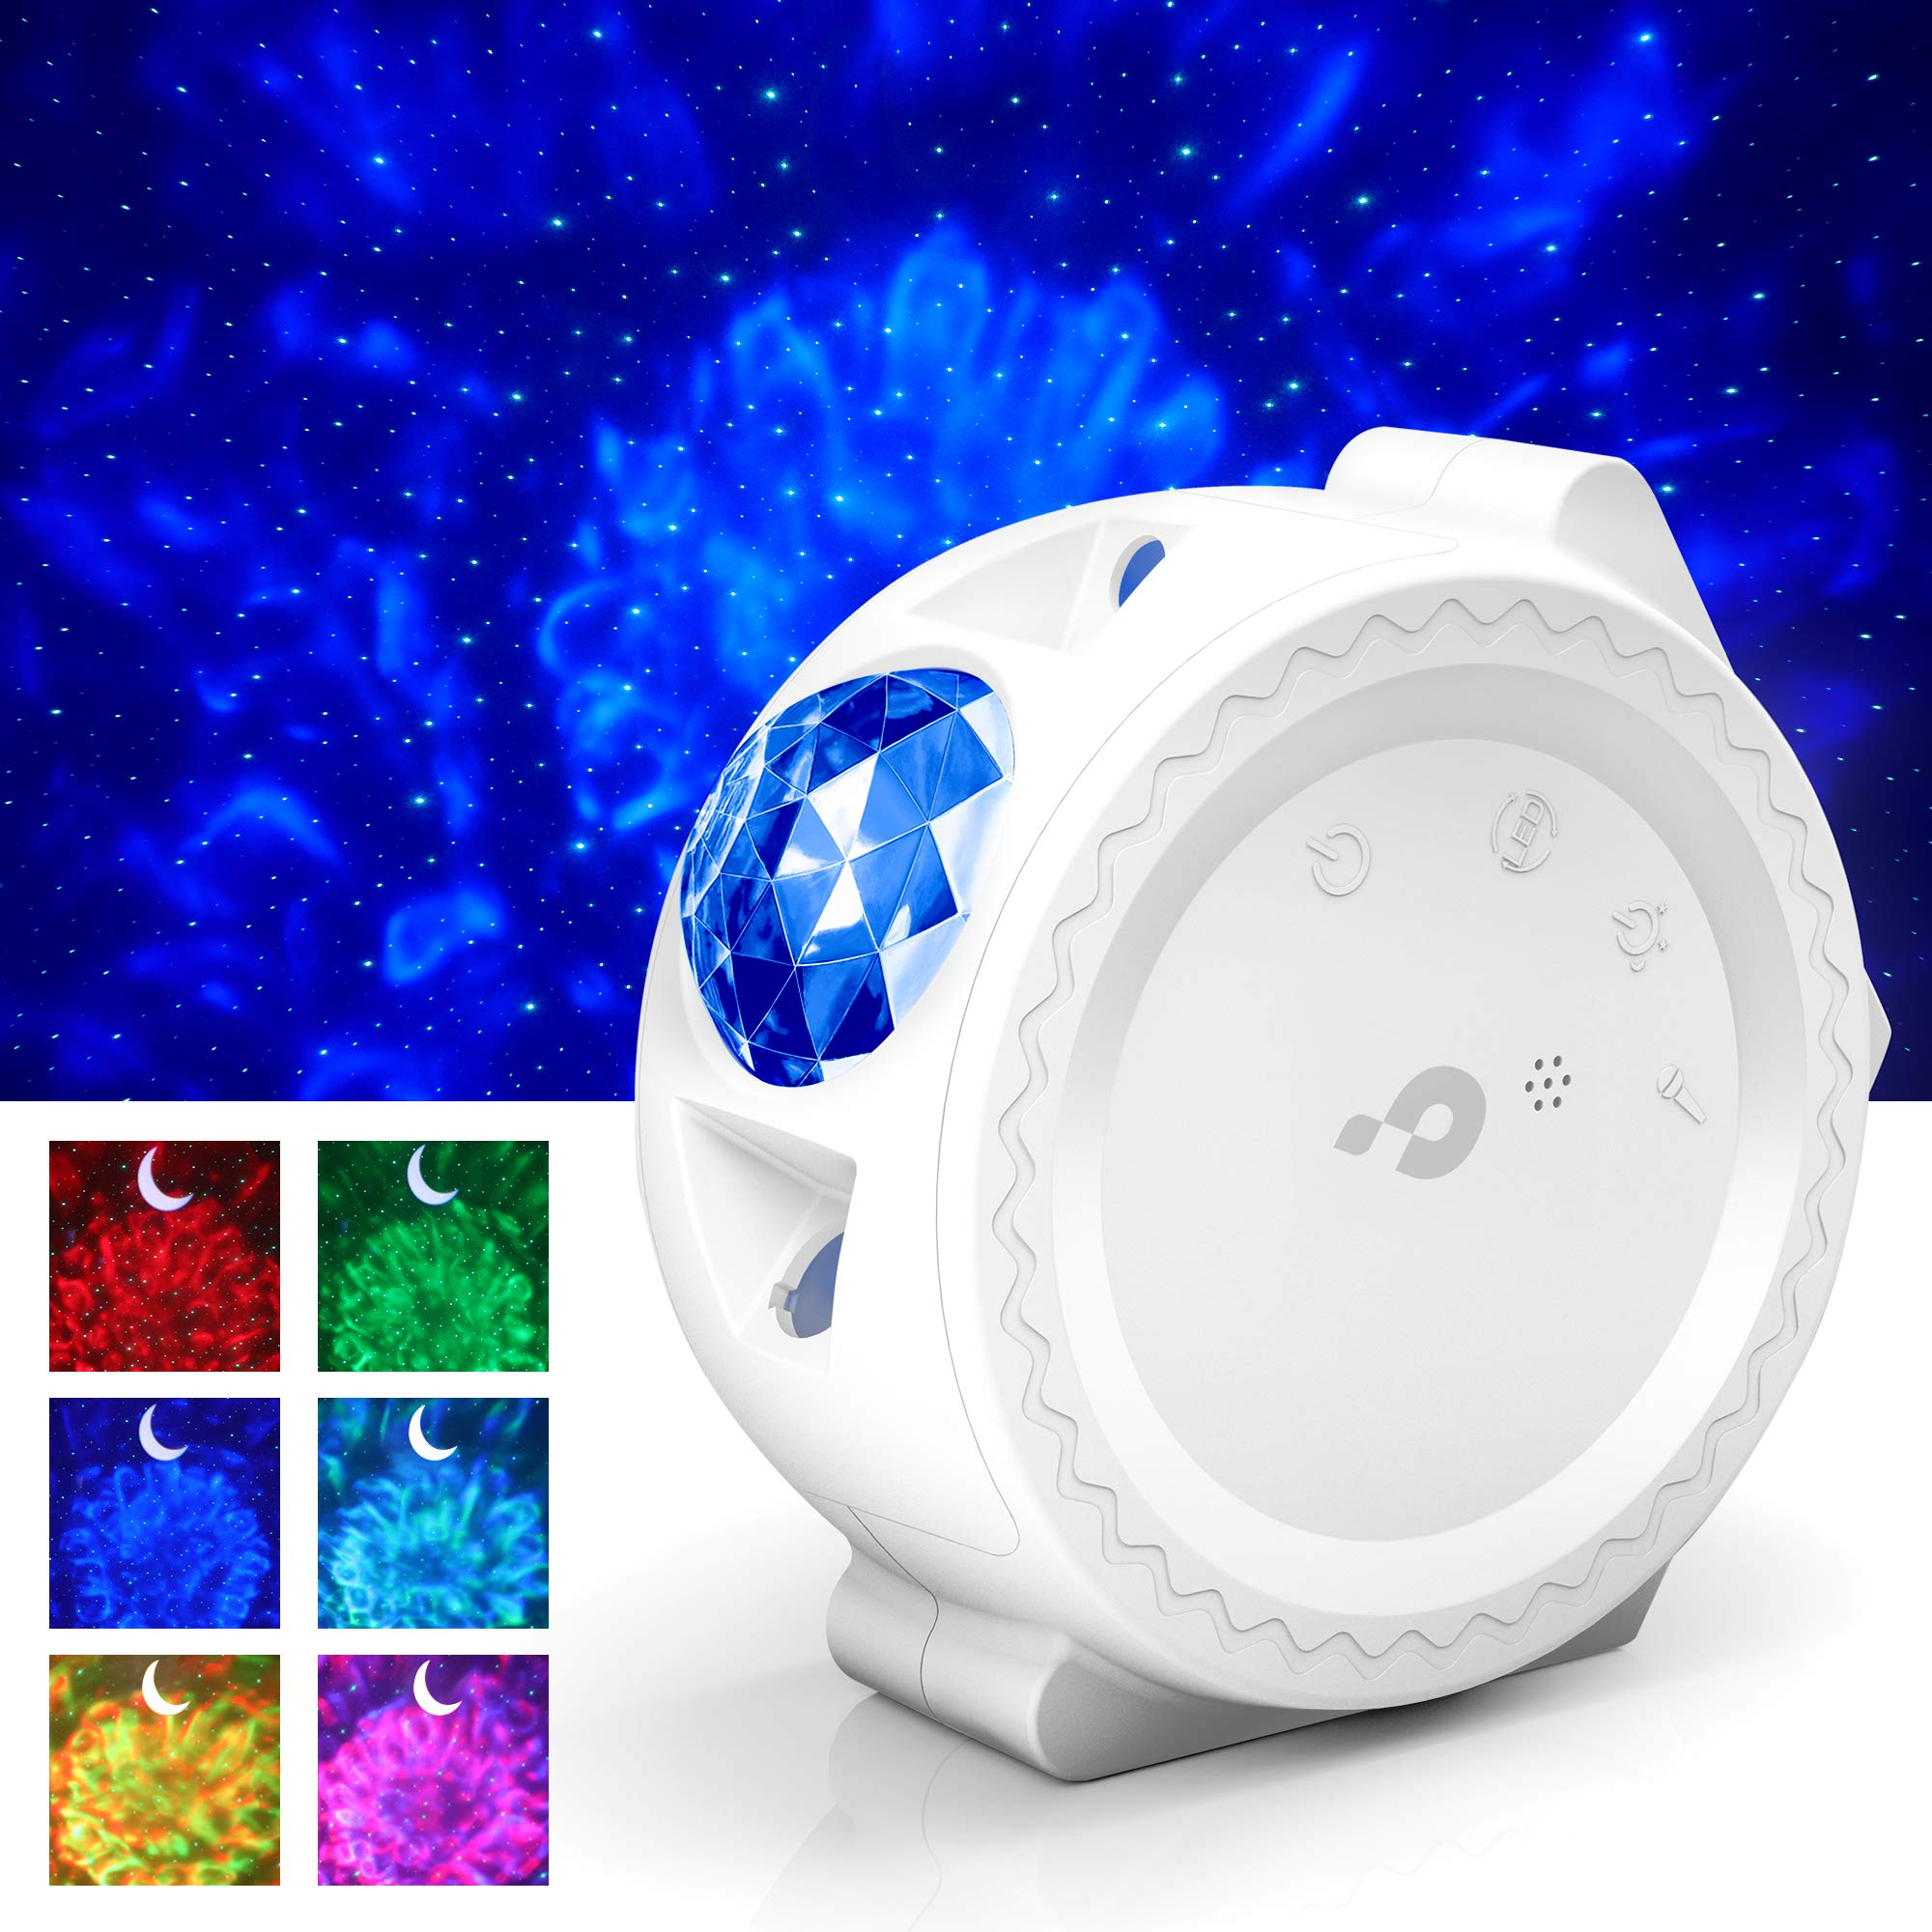 Star Projector, 3-1 Ocean Wave Projector Star Sky Night Light w/LED Nebula Cloud Touch&Voice Control Christmas Projector Light for Baby Kids Bedroom/Game Rooms/Home Theatre/Room Decor/Night Light